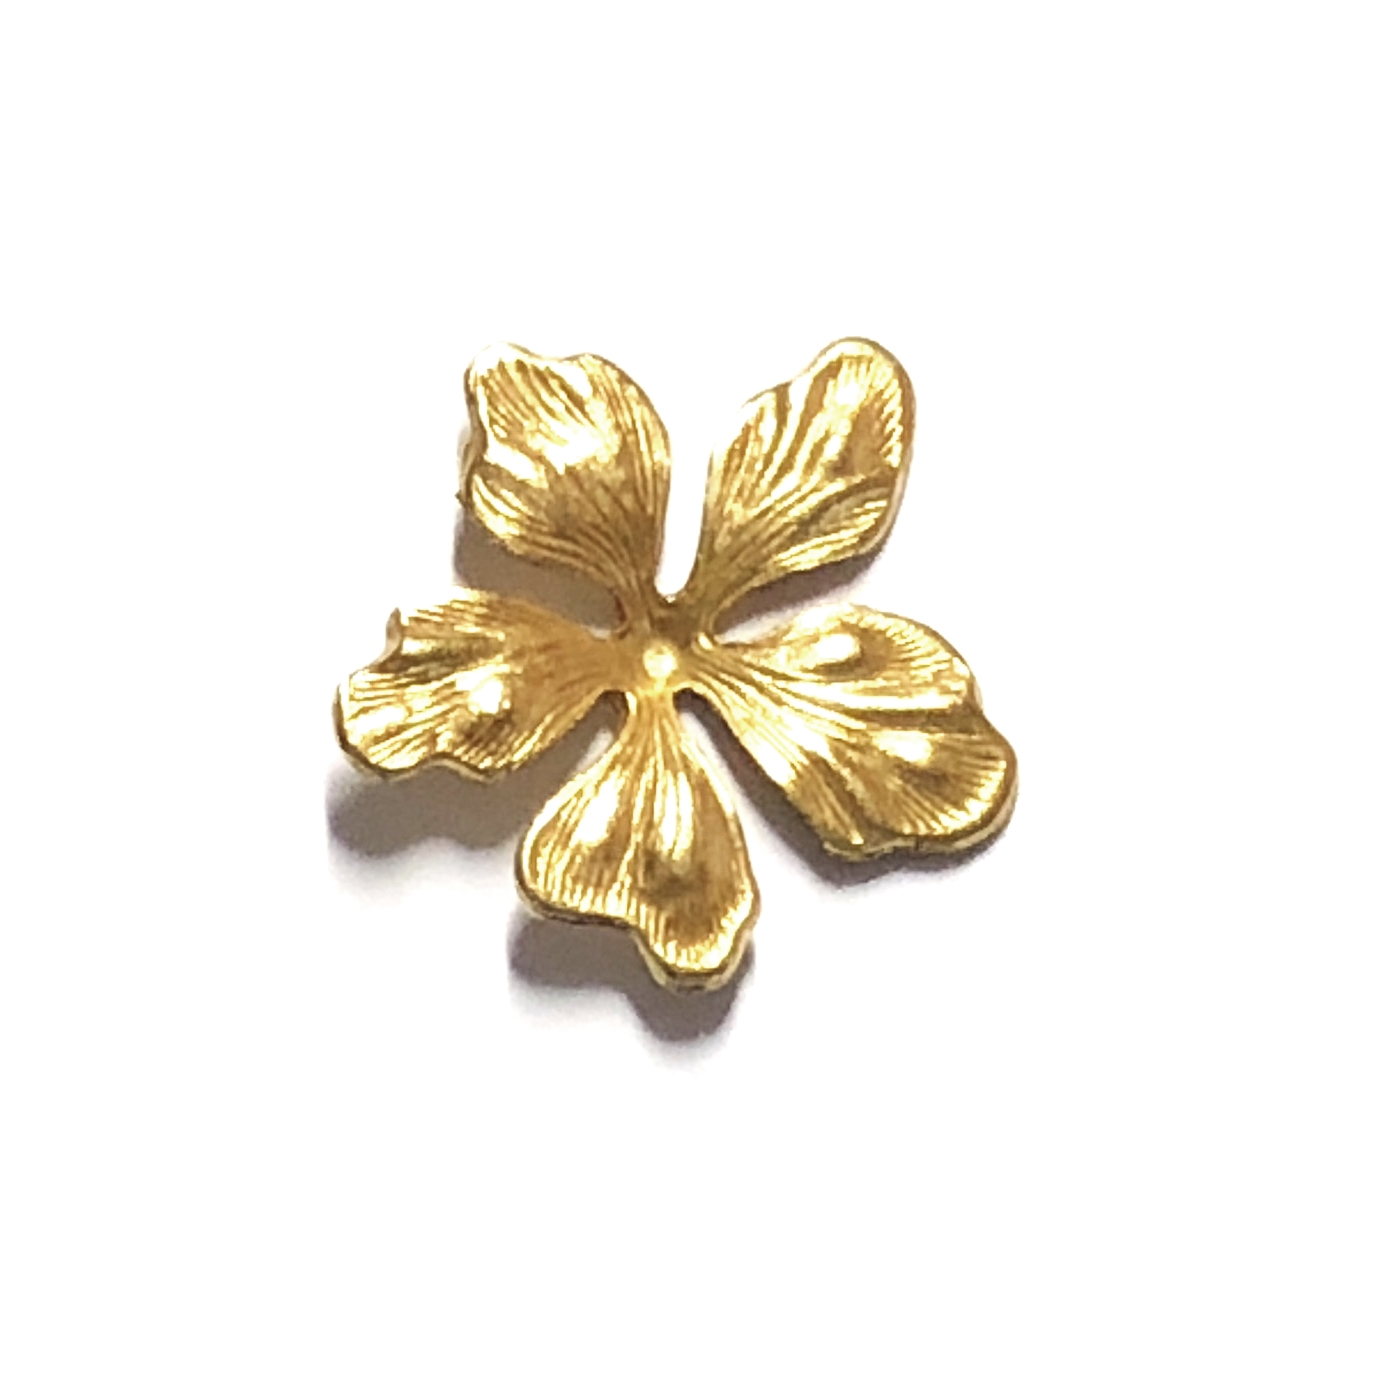 brass leaves, dogwood leaves, 08454, vintage jewelry supplies, jewelry making supplies, US made jewelry supplies, nickel free jewelry supplies, classic gold leaves, antique gold leaves, leaf jewelry supplies